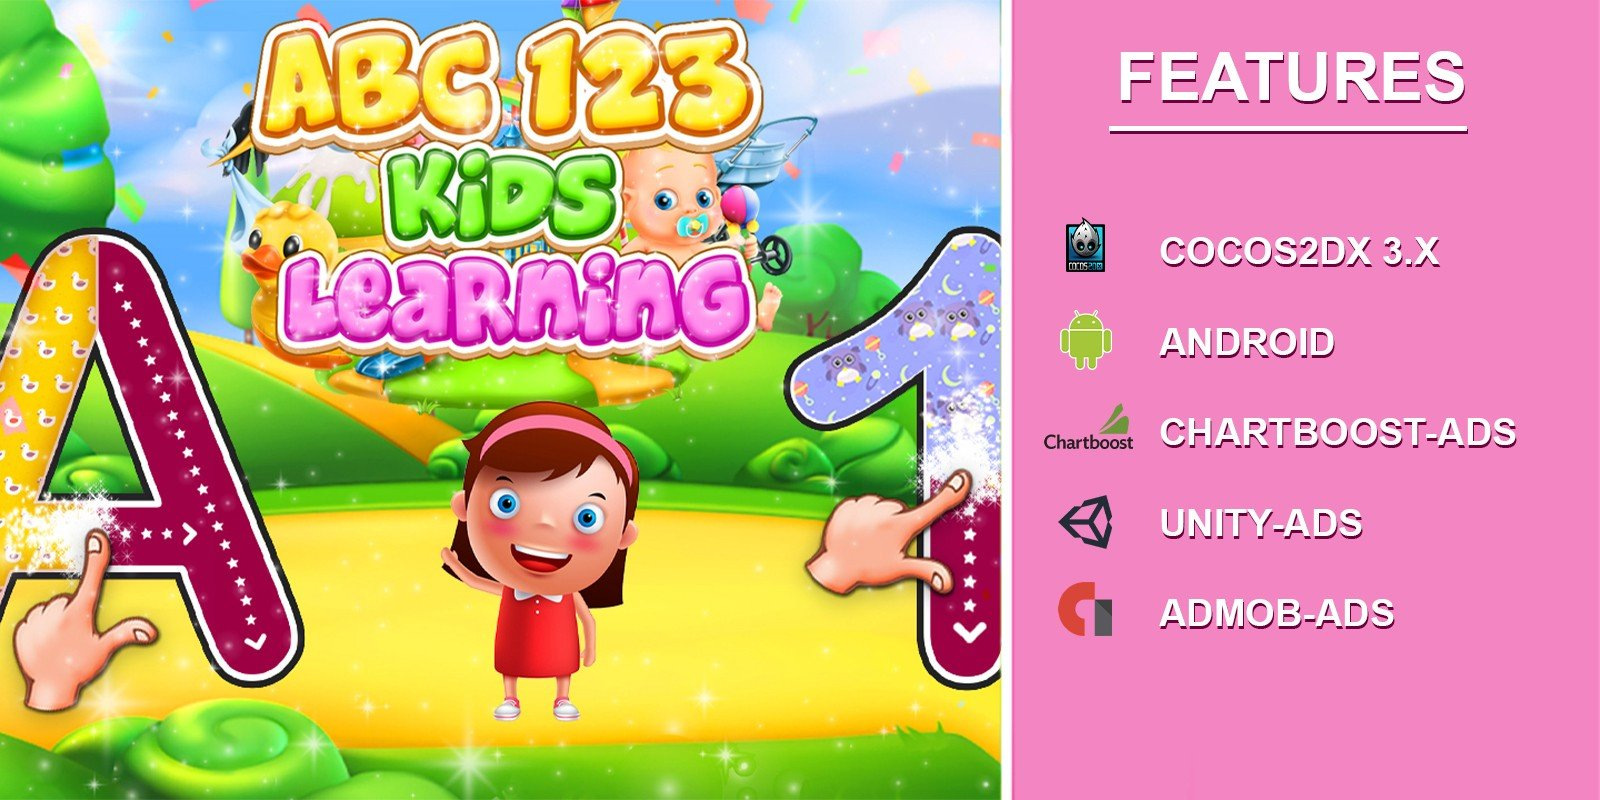 Abc 123 Kids Learning Game - Android